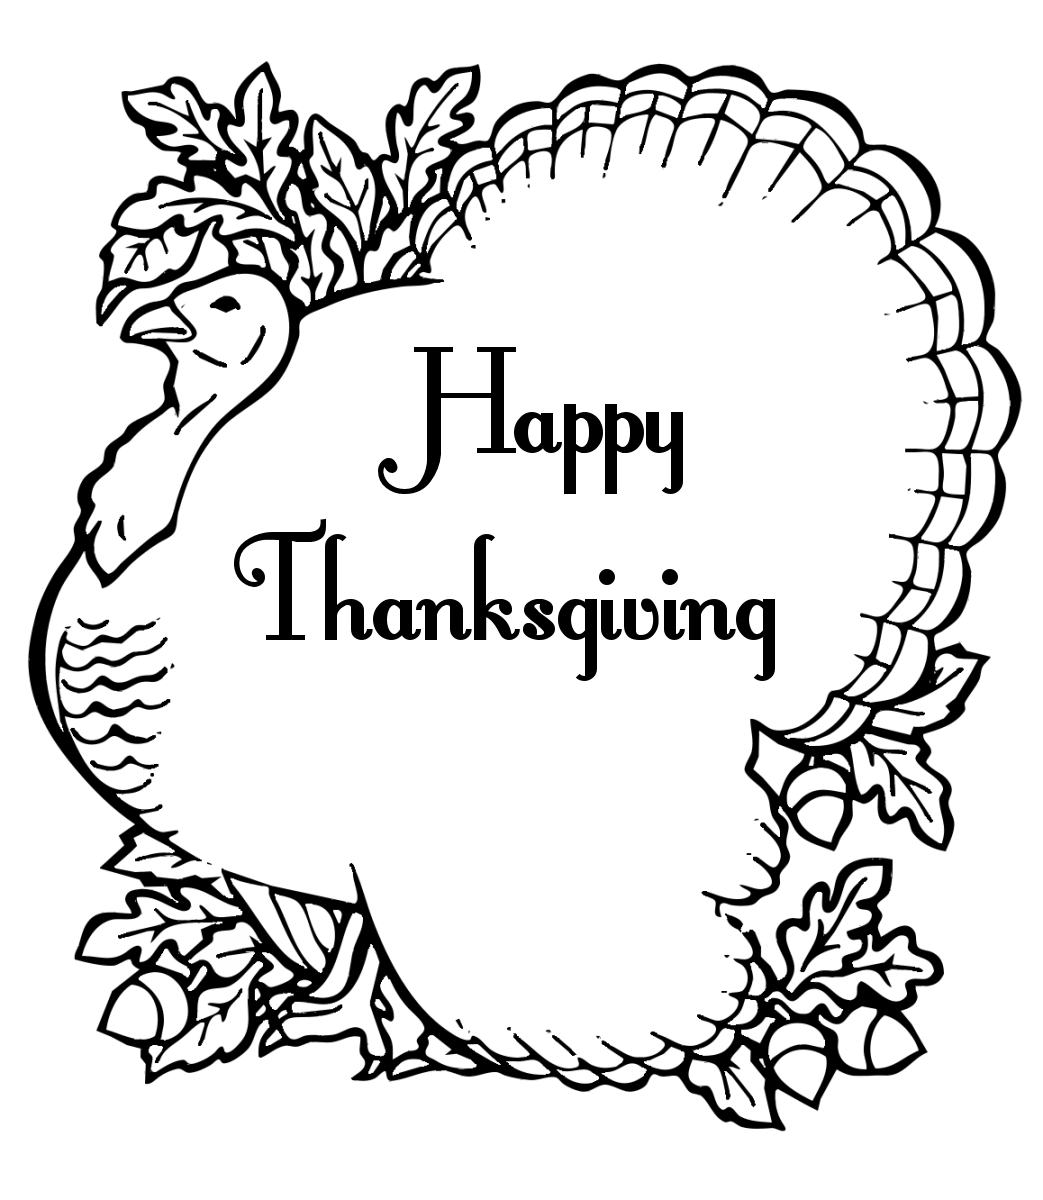 Free Thanksgiving Clipart. Se - Thanksgiving Clip Art Black And White